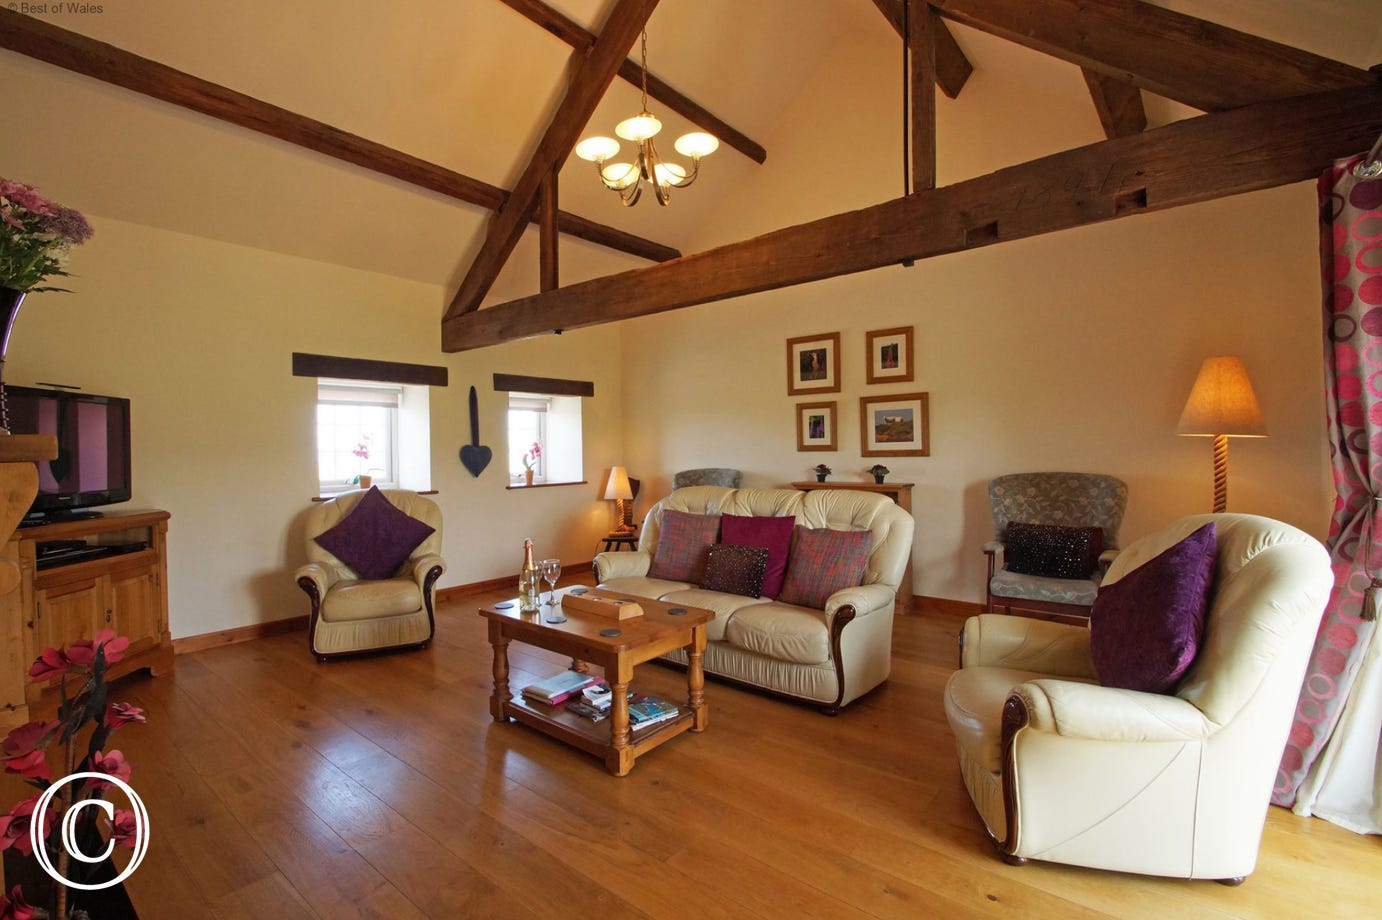 Living room with solid oak floor and comfortable, large leather sofas